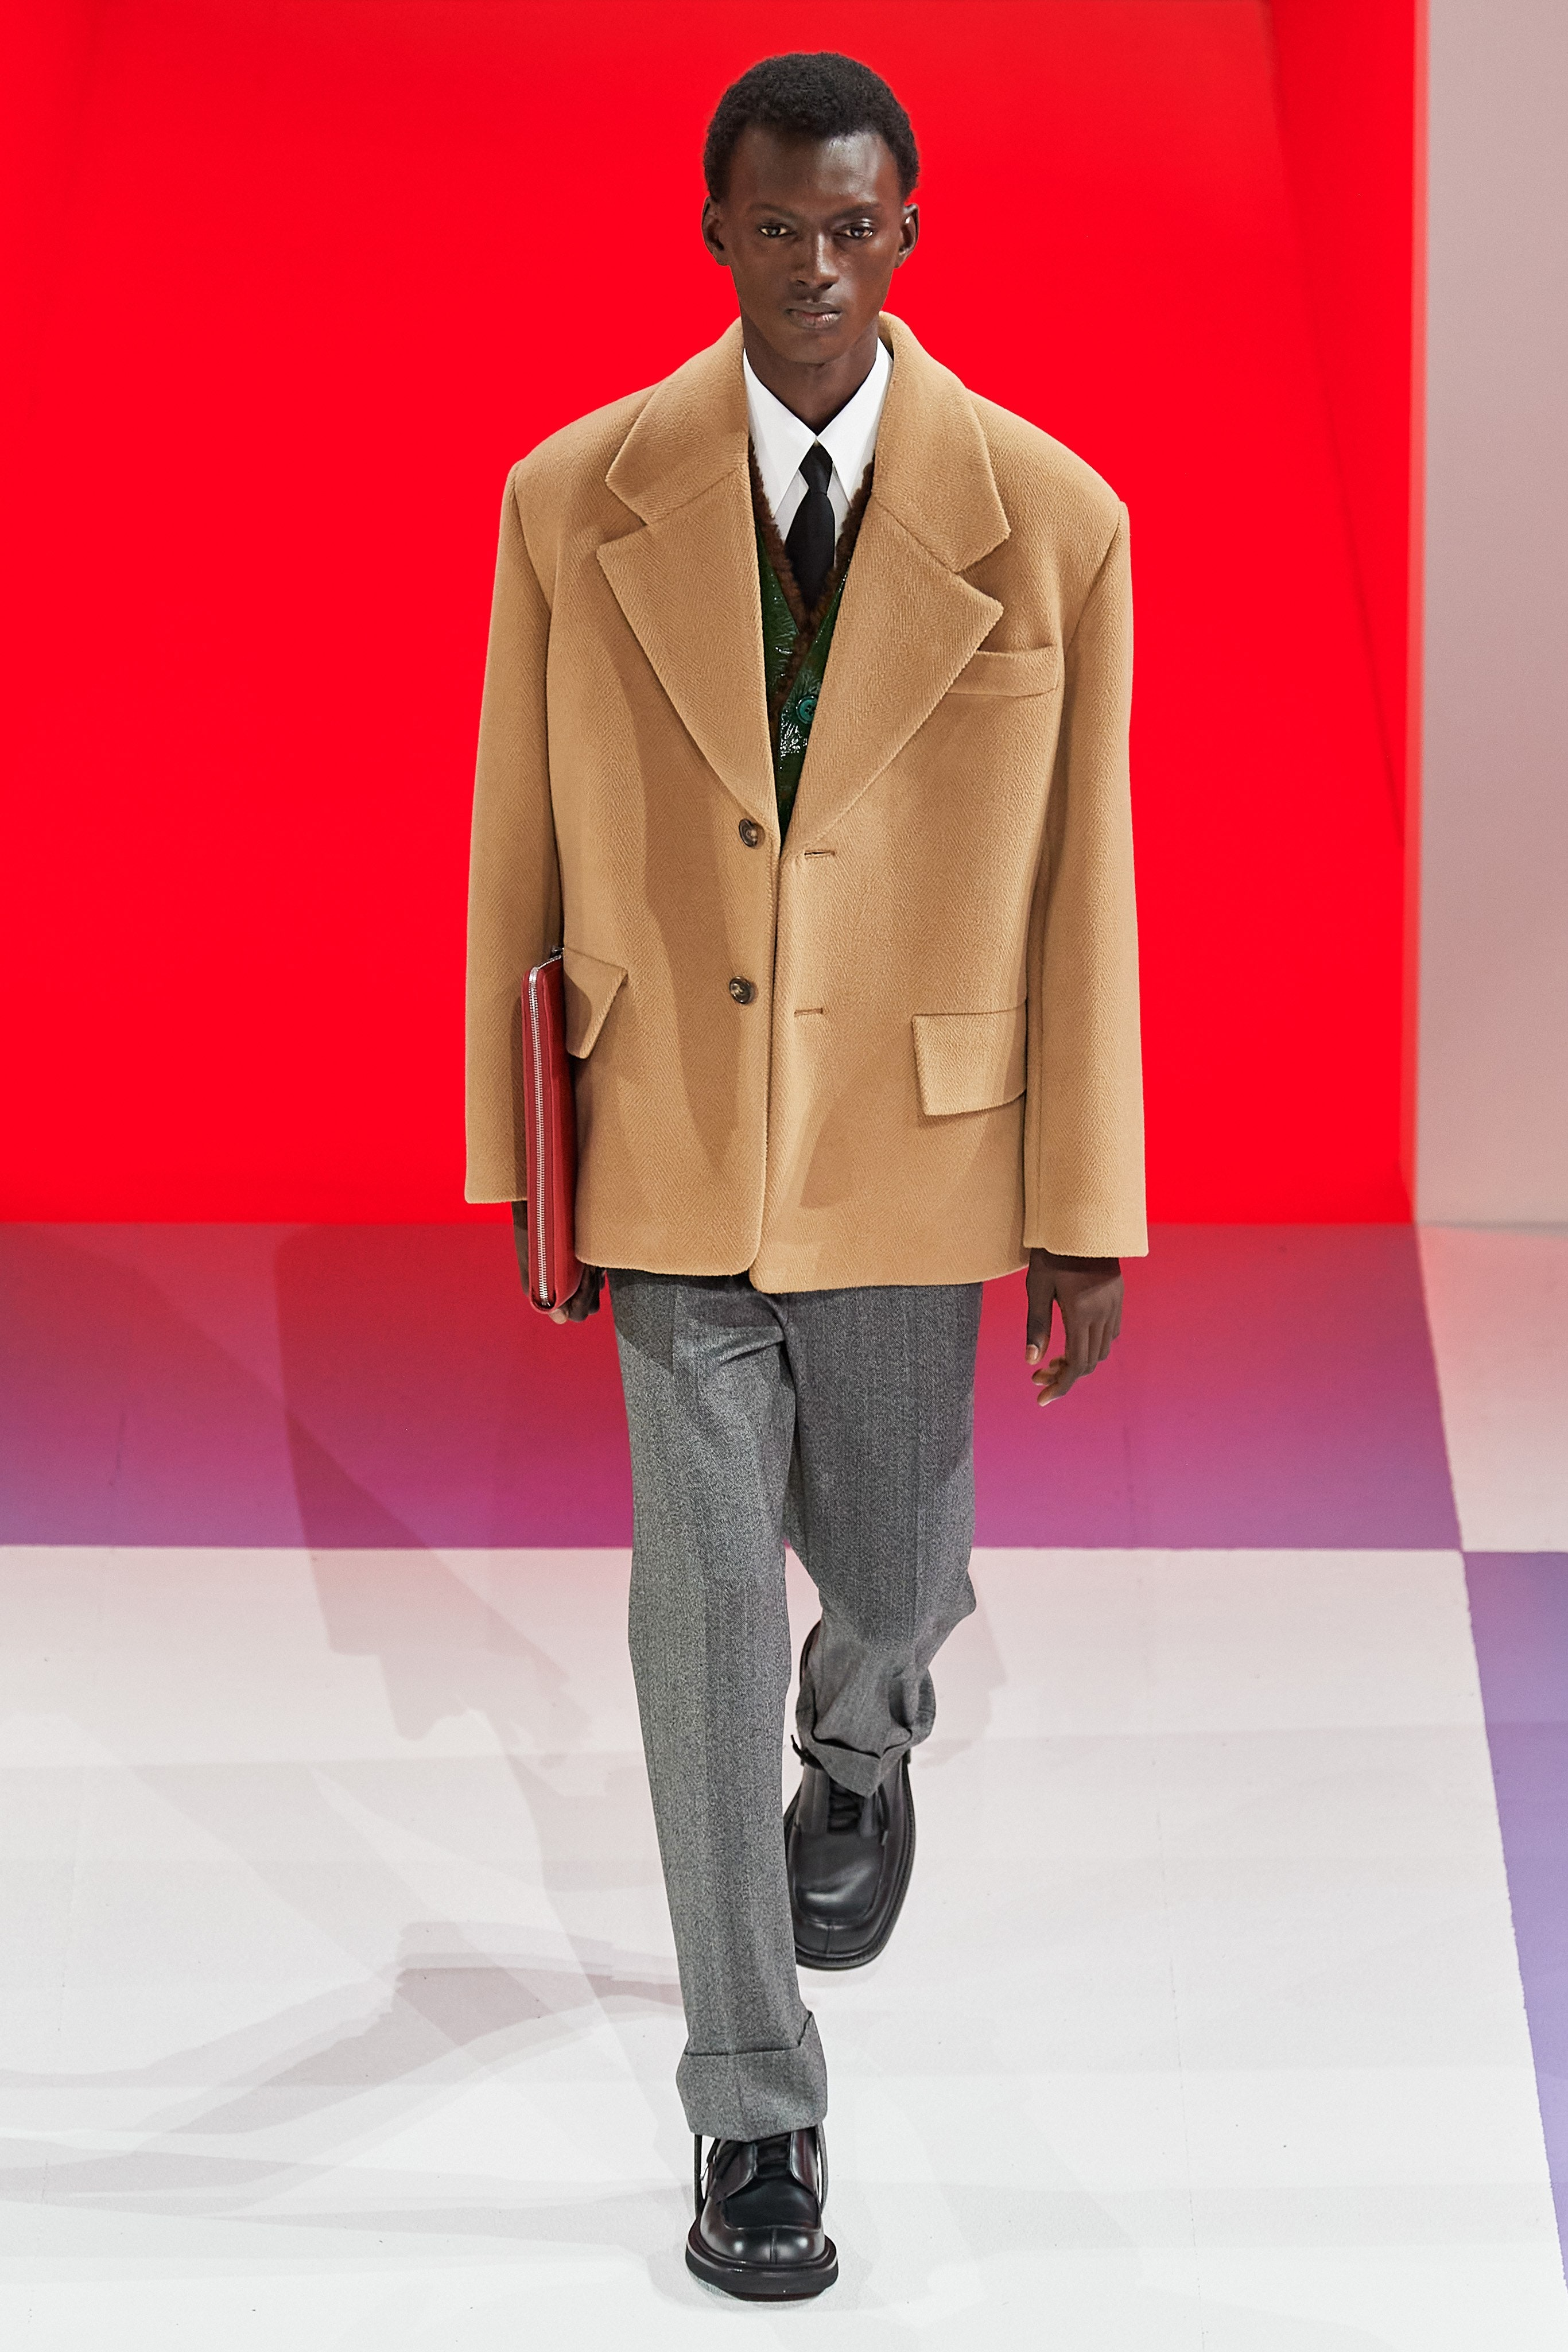 A Look at the Prada Fall 2020 Menswear Collection prada fall 2020 A Look at the Prada Fall 2020 Menswear Collection FIO1779